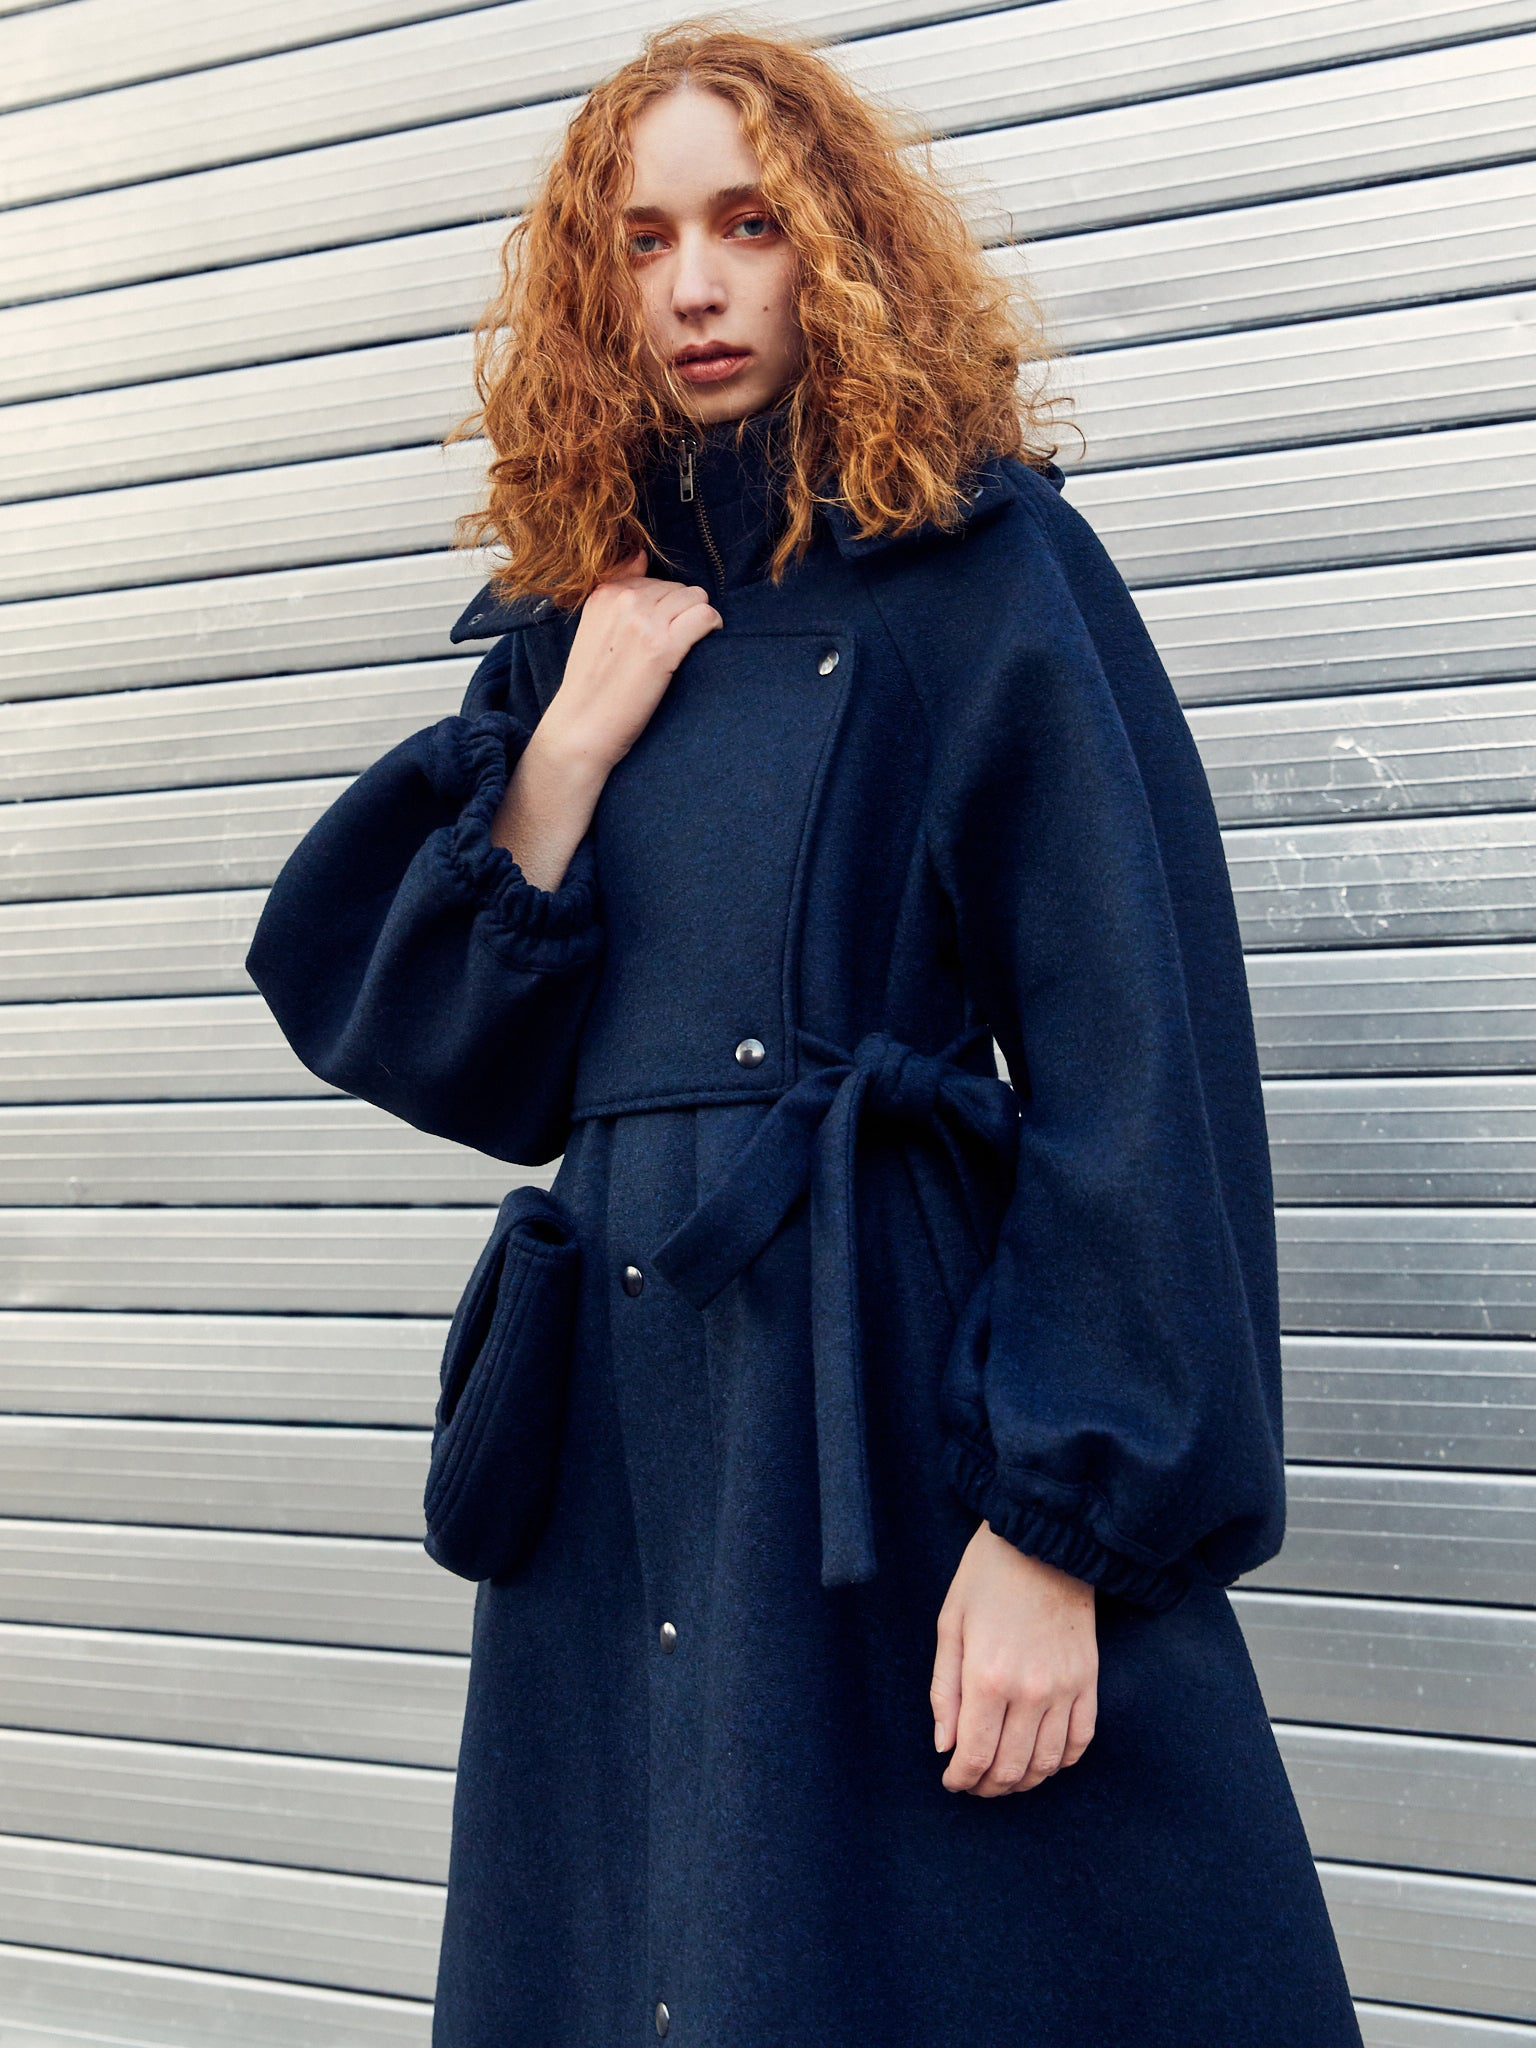 Navy wool coat with stand collar by Henrik Vibskov